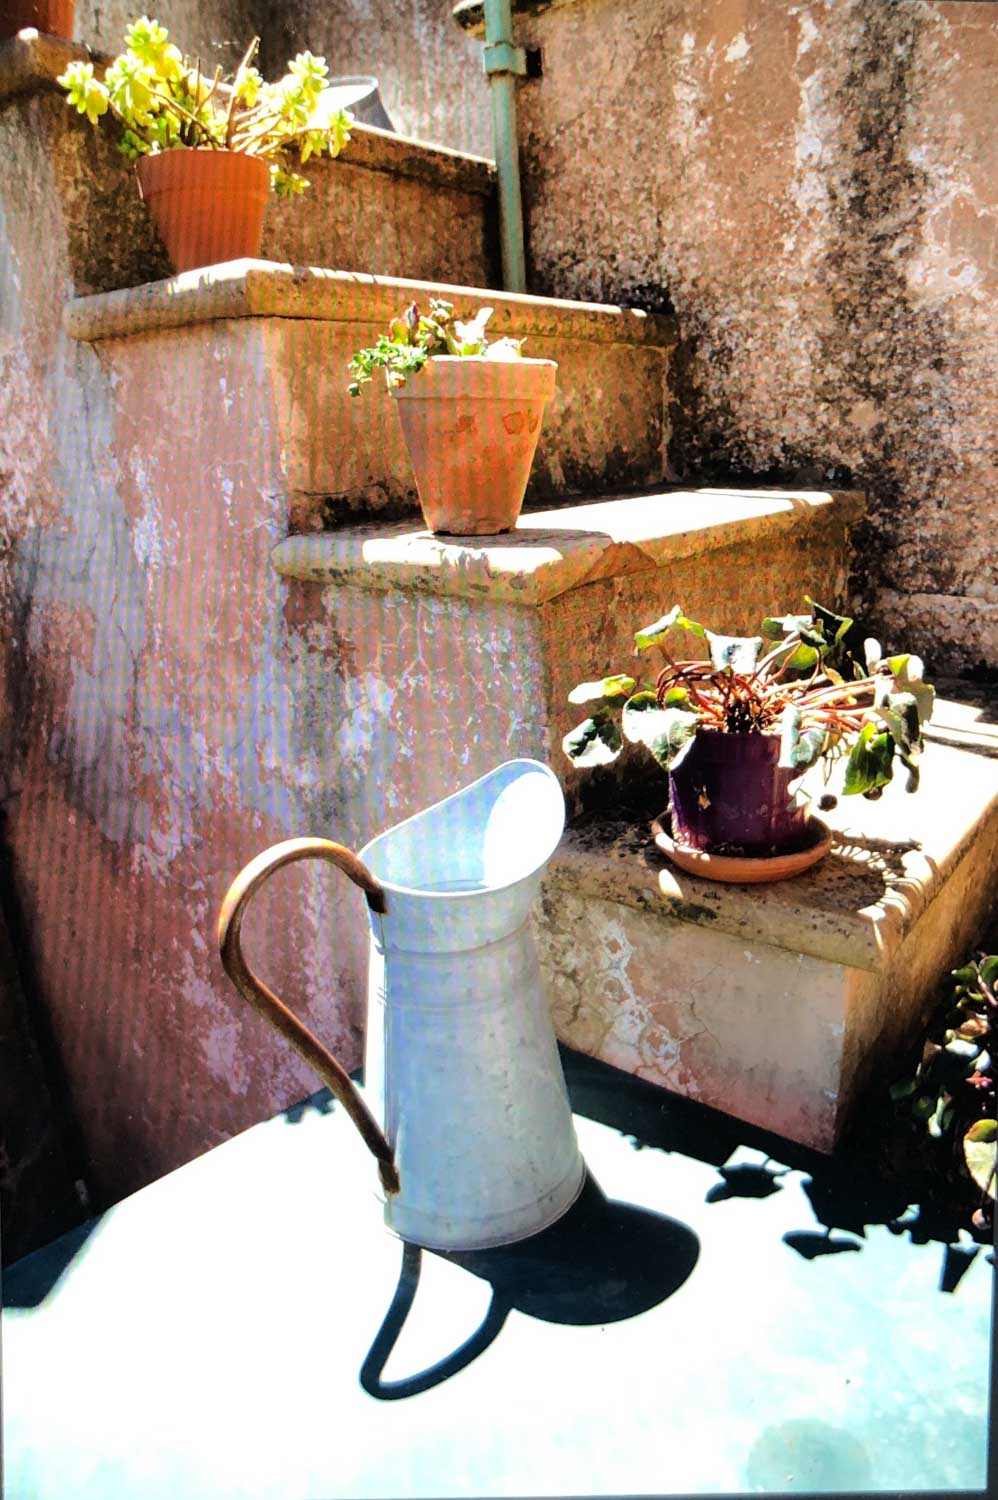 Val de Mossa Pitcher - original digital image in color.